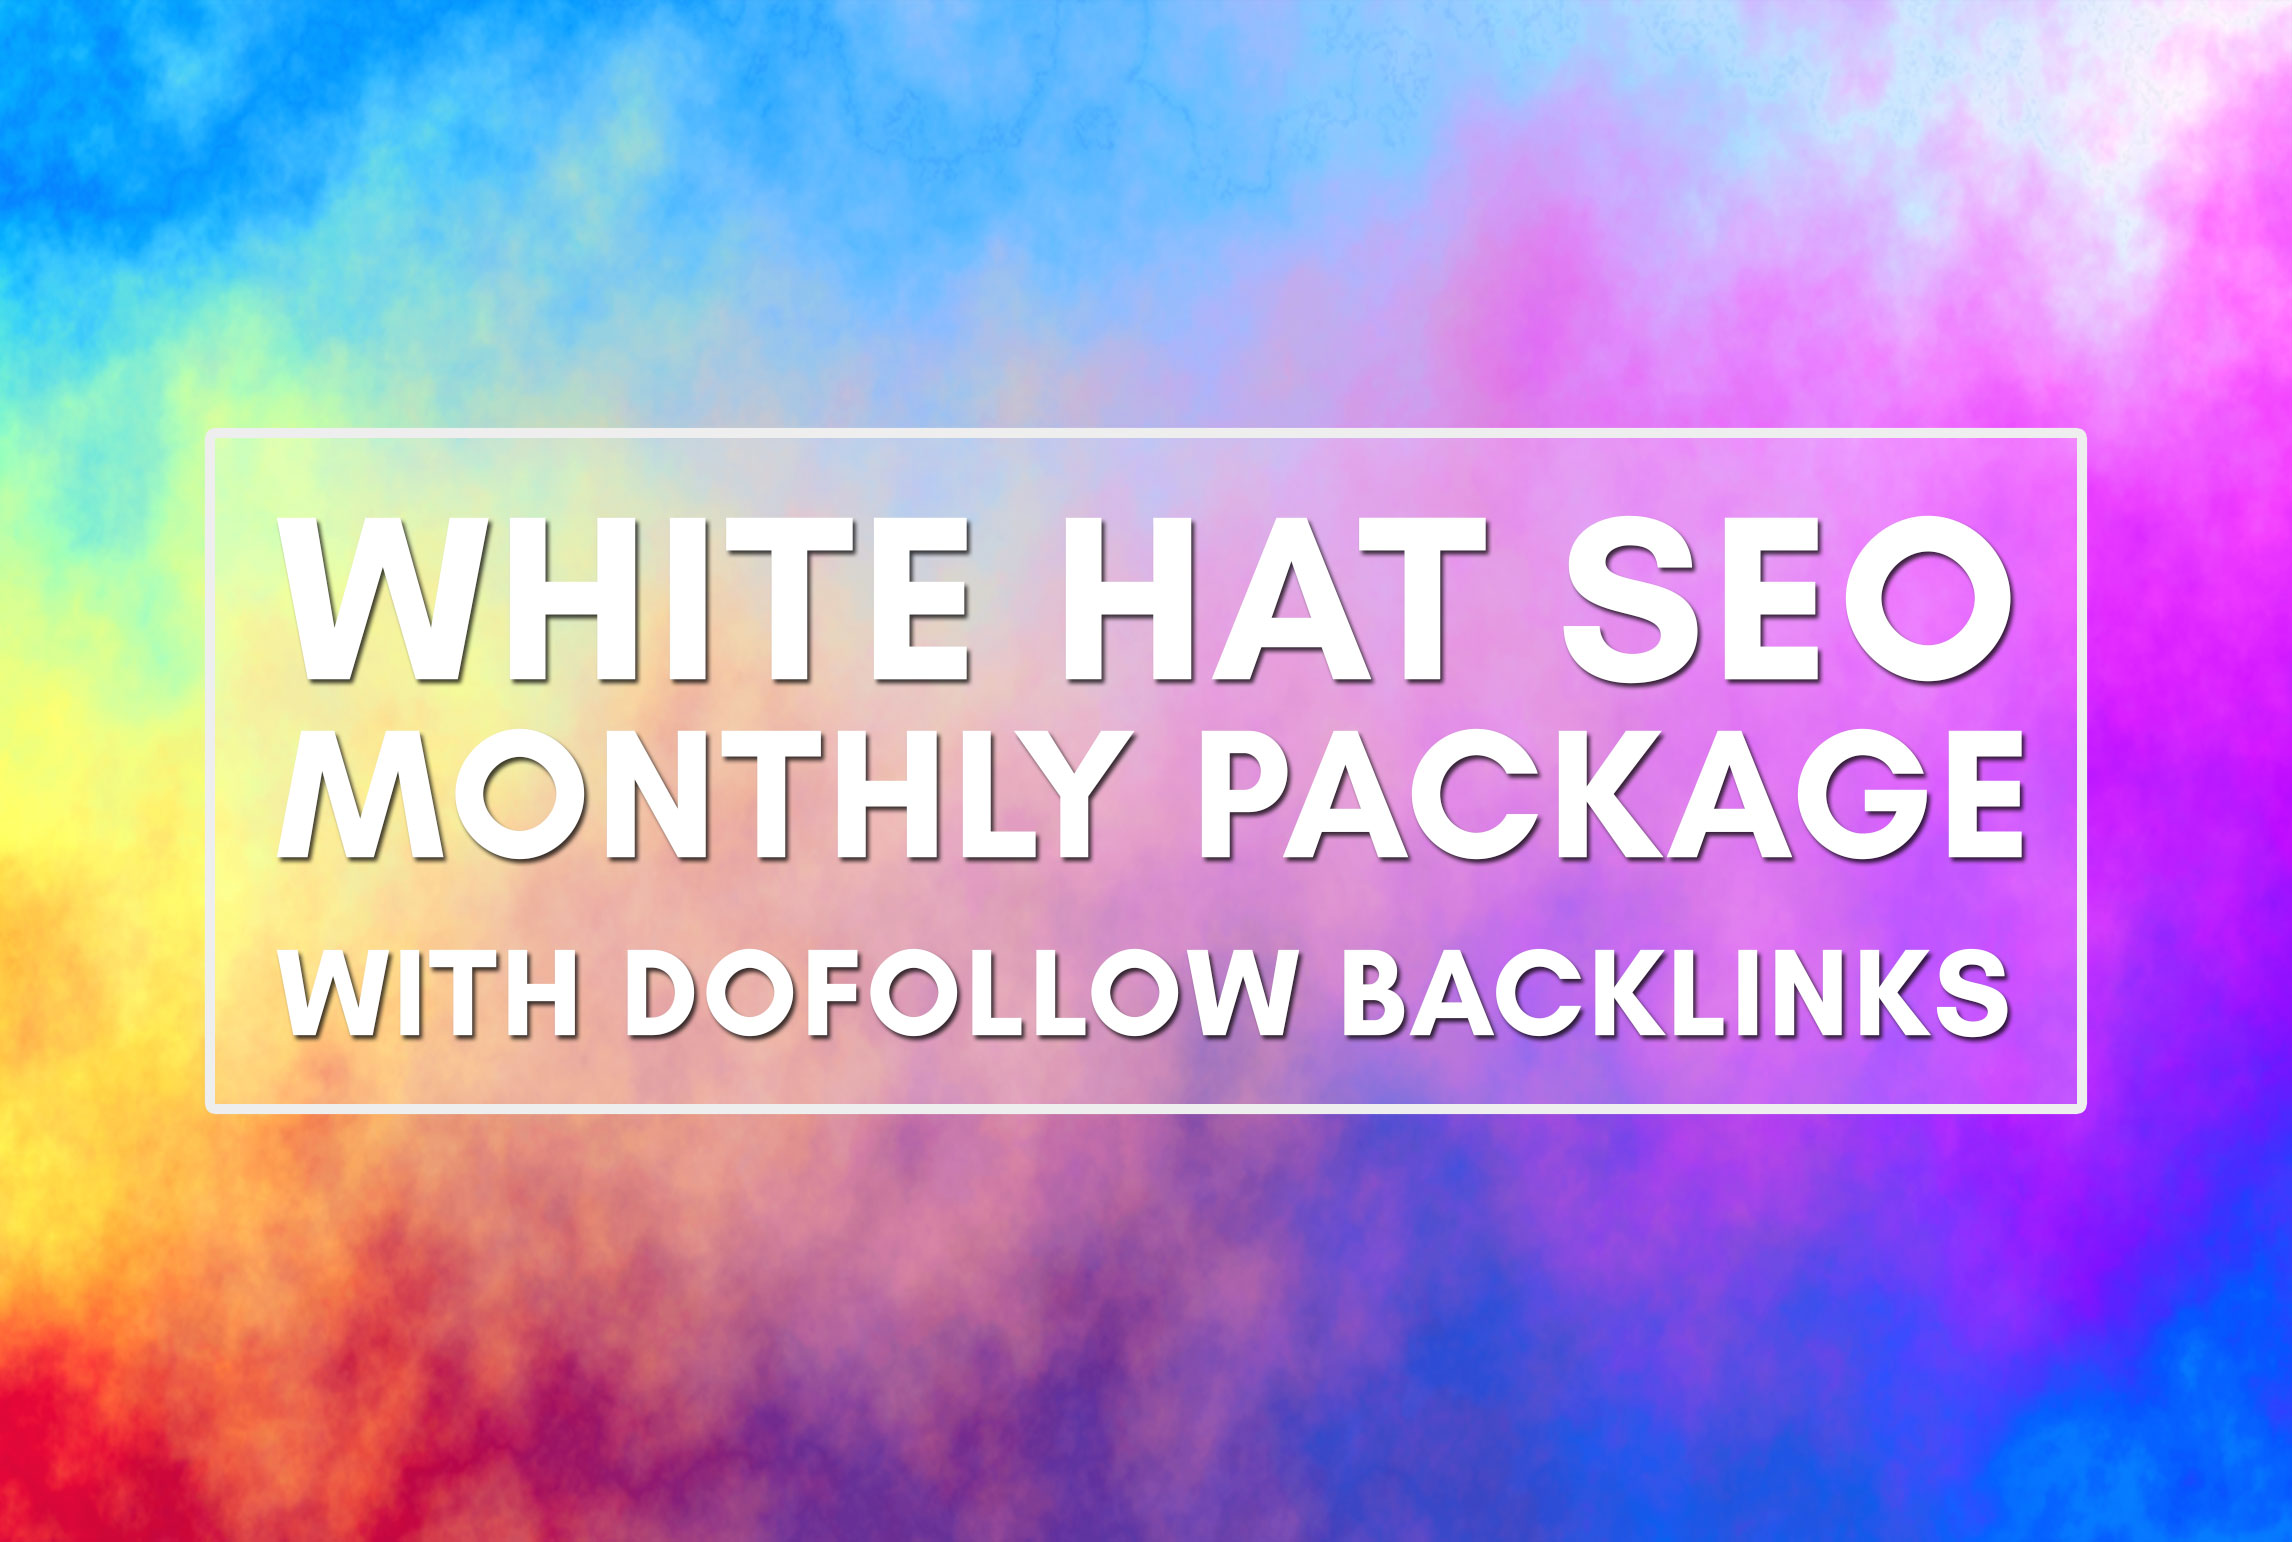 I do provide white hat SEO monthly package with dofollow backlinks